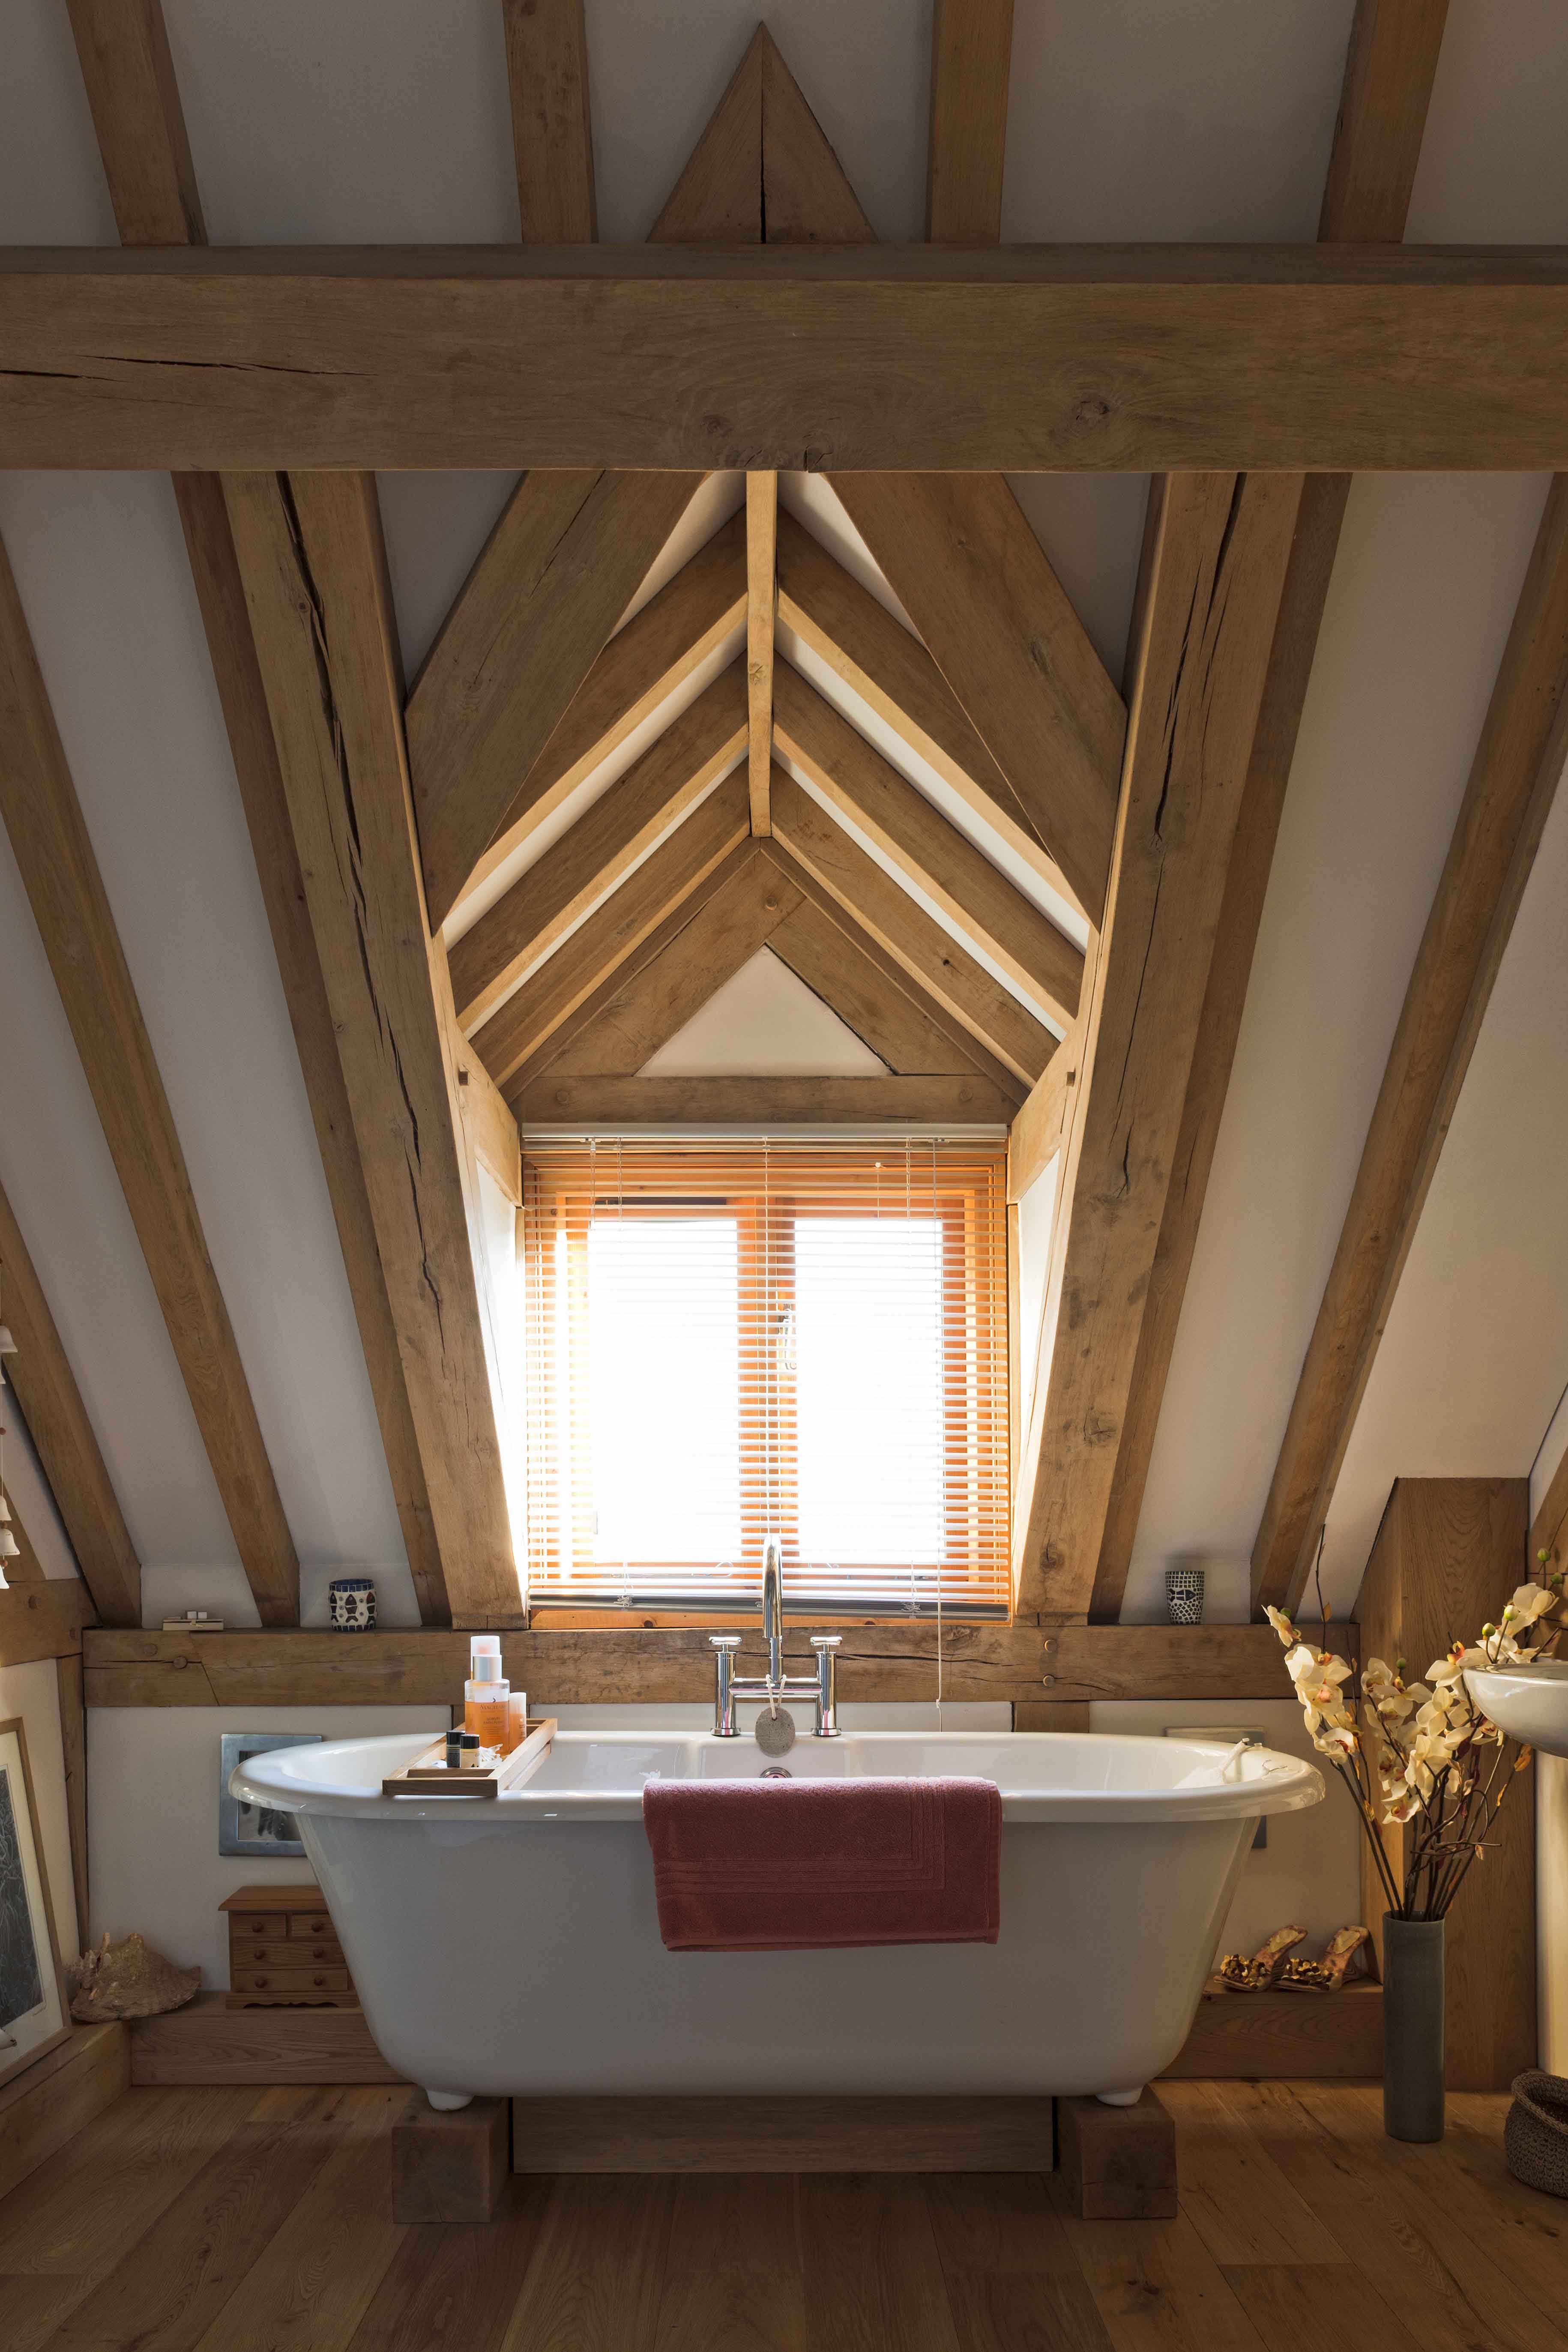 Dormer window ideas  the dormer window allows plenty of light to enter the bathroom